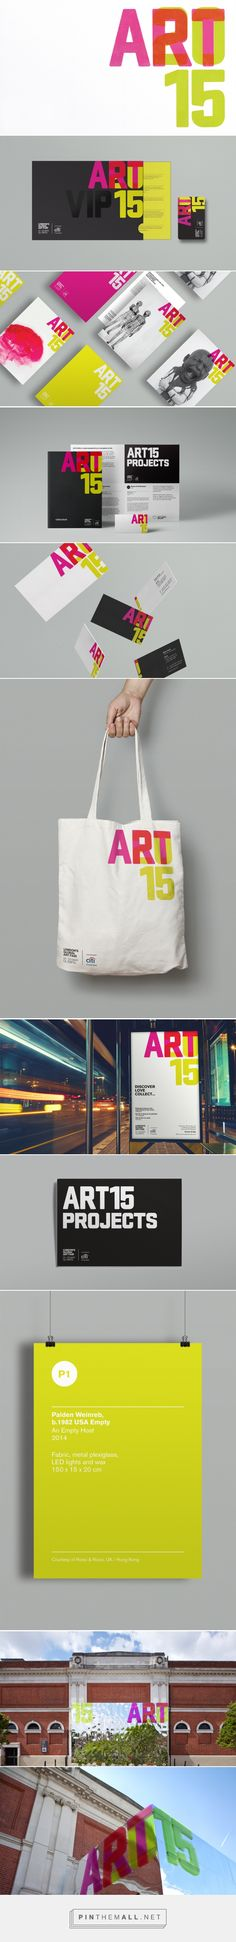 Art15 Branding by The Plant | Fivestar Branding – Design and Branding Agency & Inspiration Gallery